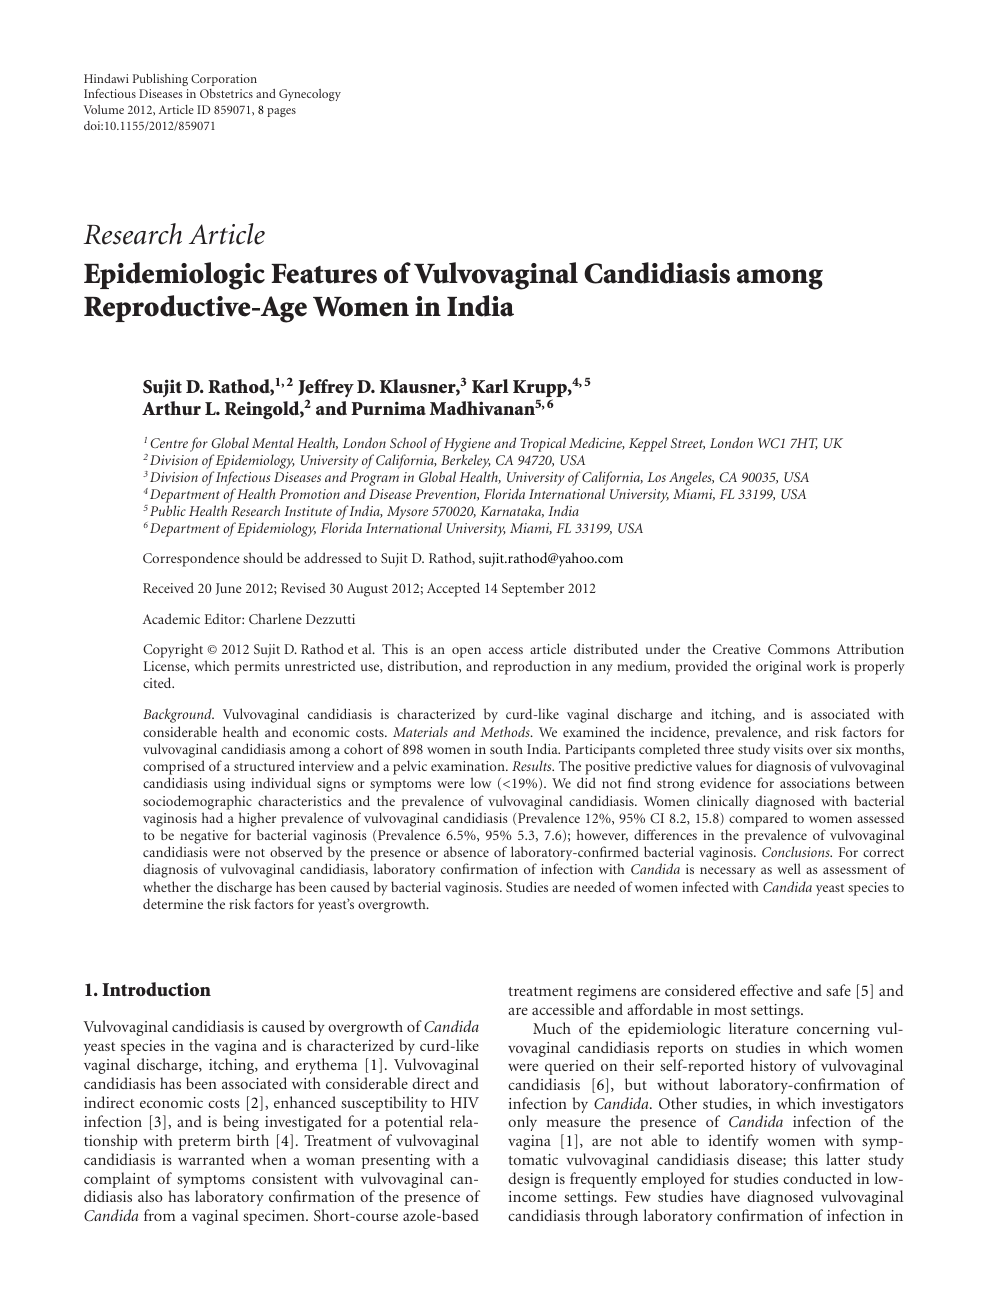 Epidemiologic Features of Vulvovaginal Candidiasis among